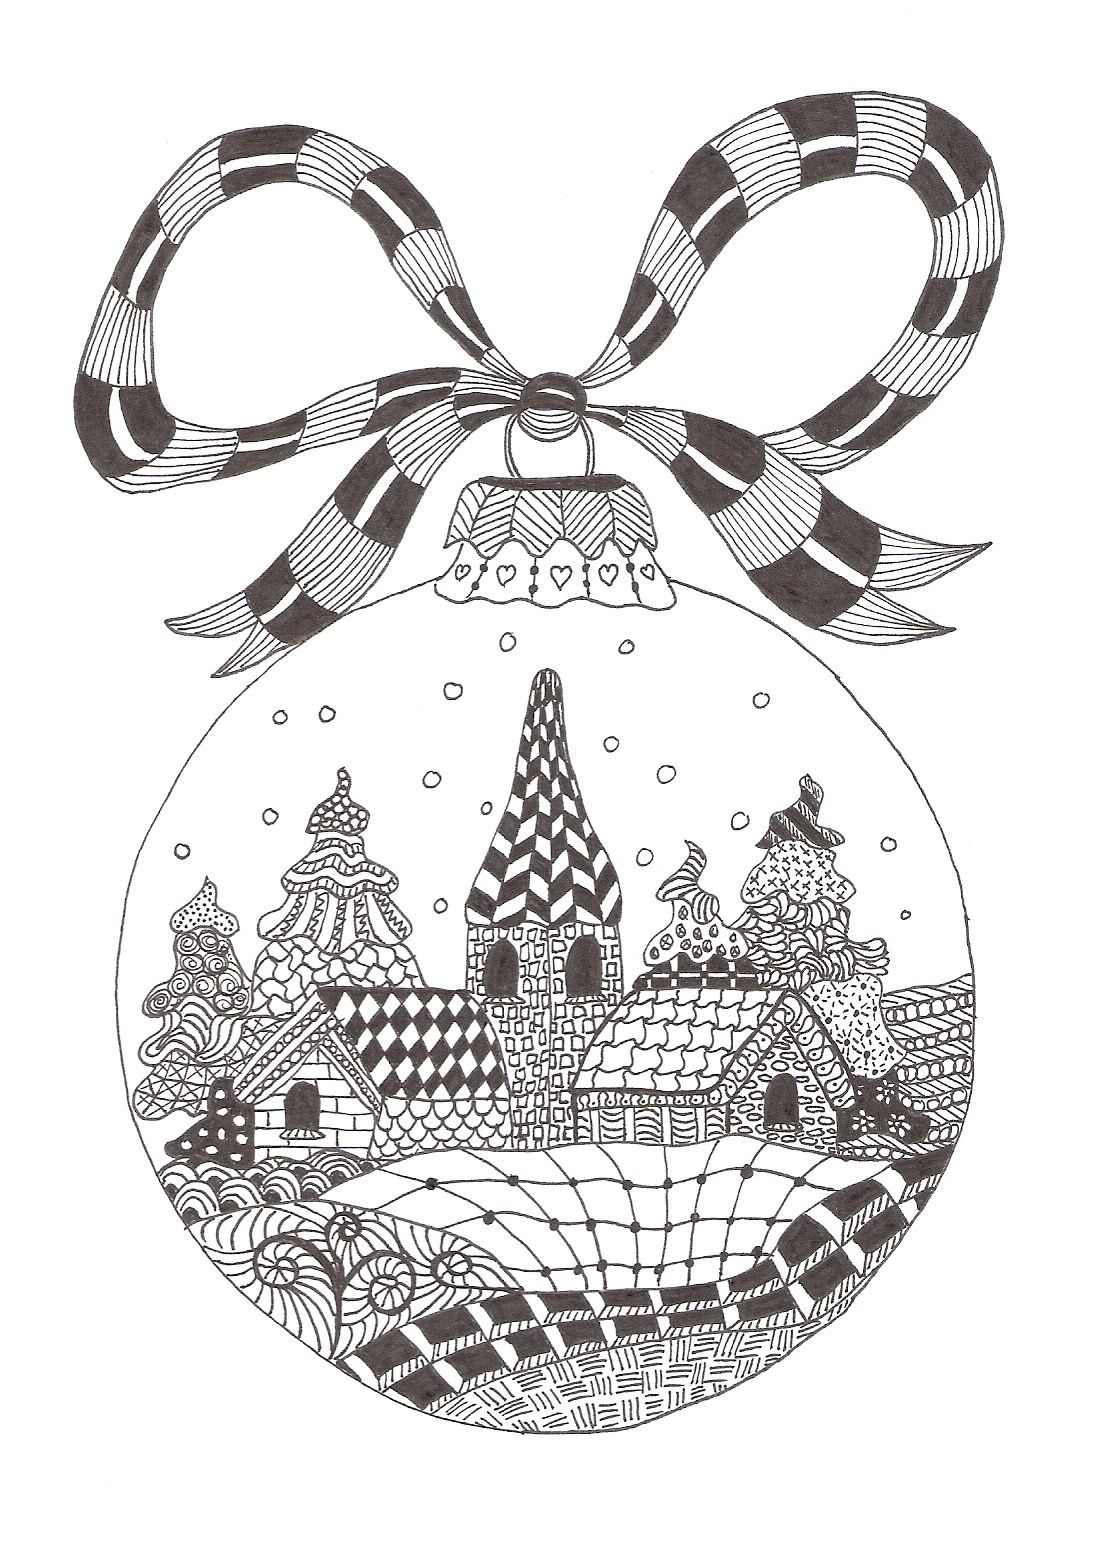 Pin By Debi Gonsales On Zentangles Made By Mariska Den Boer Zentangle Patterns Christmas Coloring Pages Christmas Colors